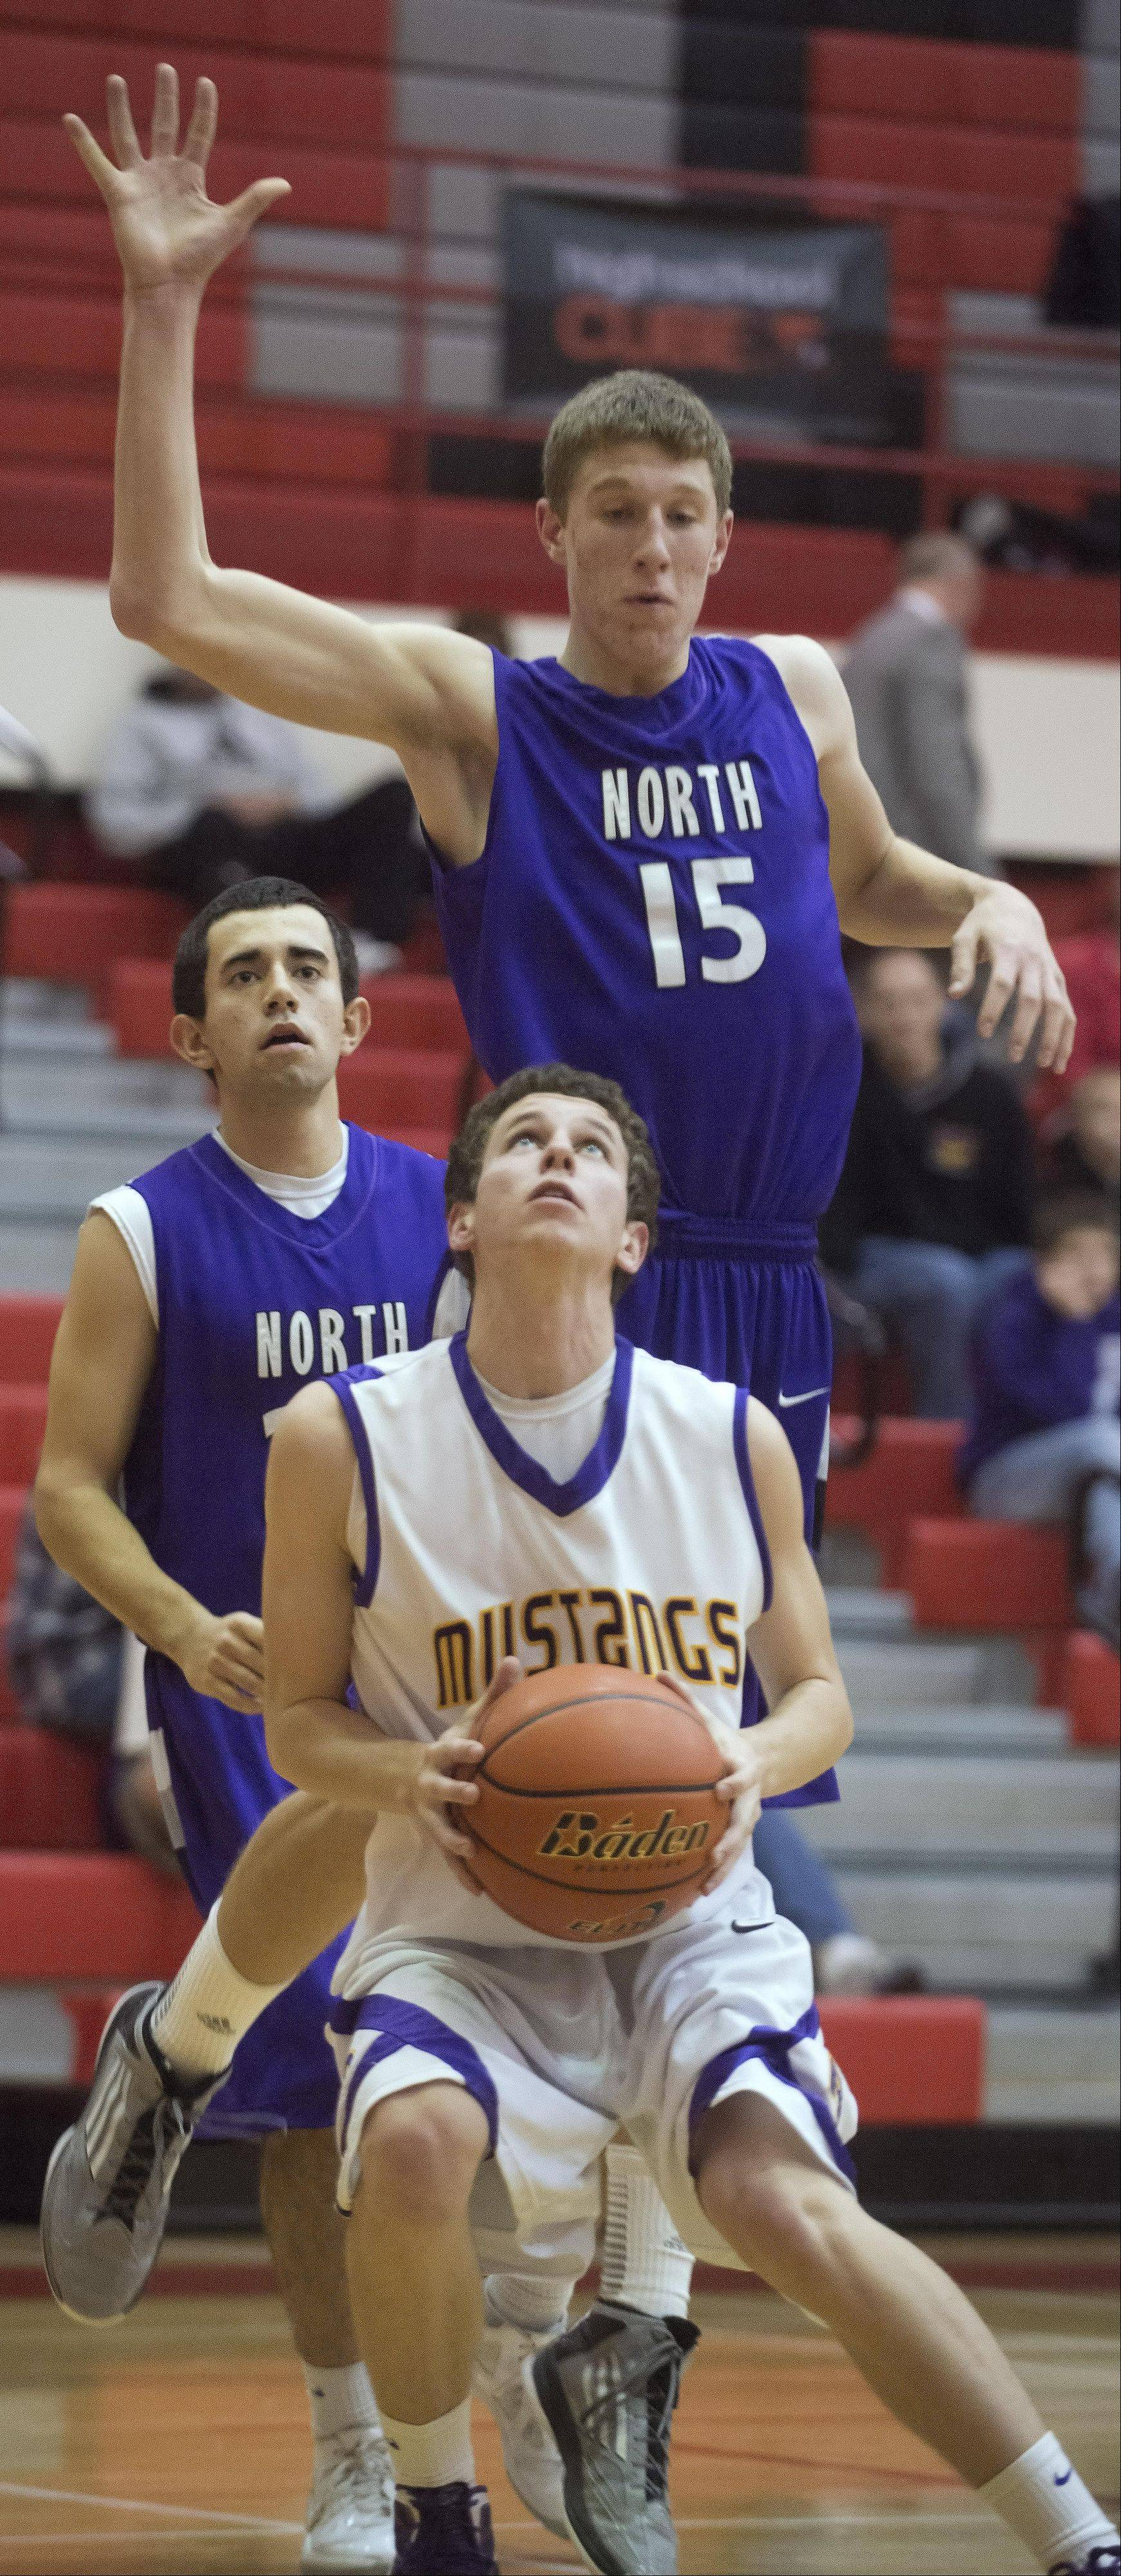 Rolling Meadows' Adam Pavlakis attempts to fake Niles North's Billy Voitik before taking a shot under the basket during Tuesday's game at Palatine.